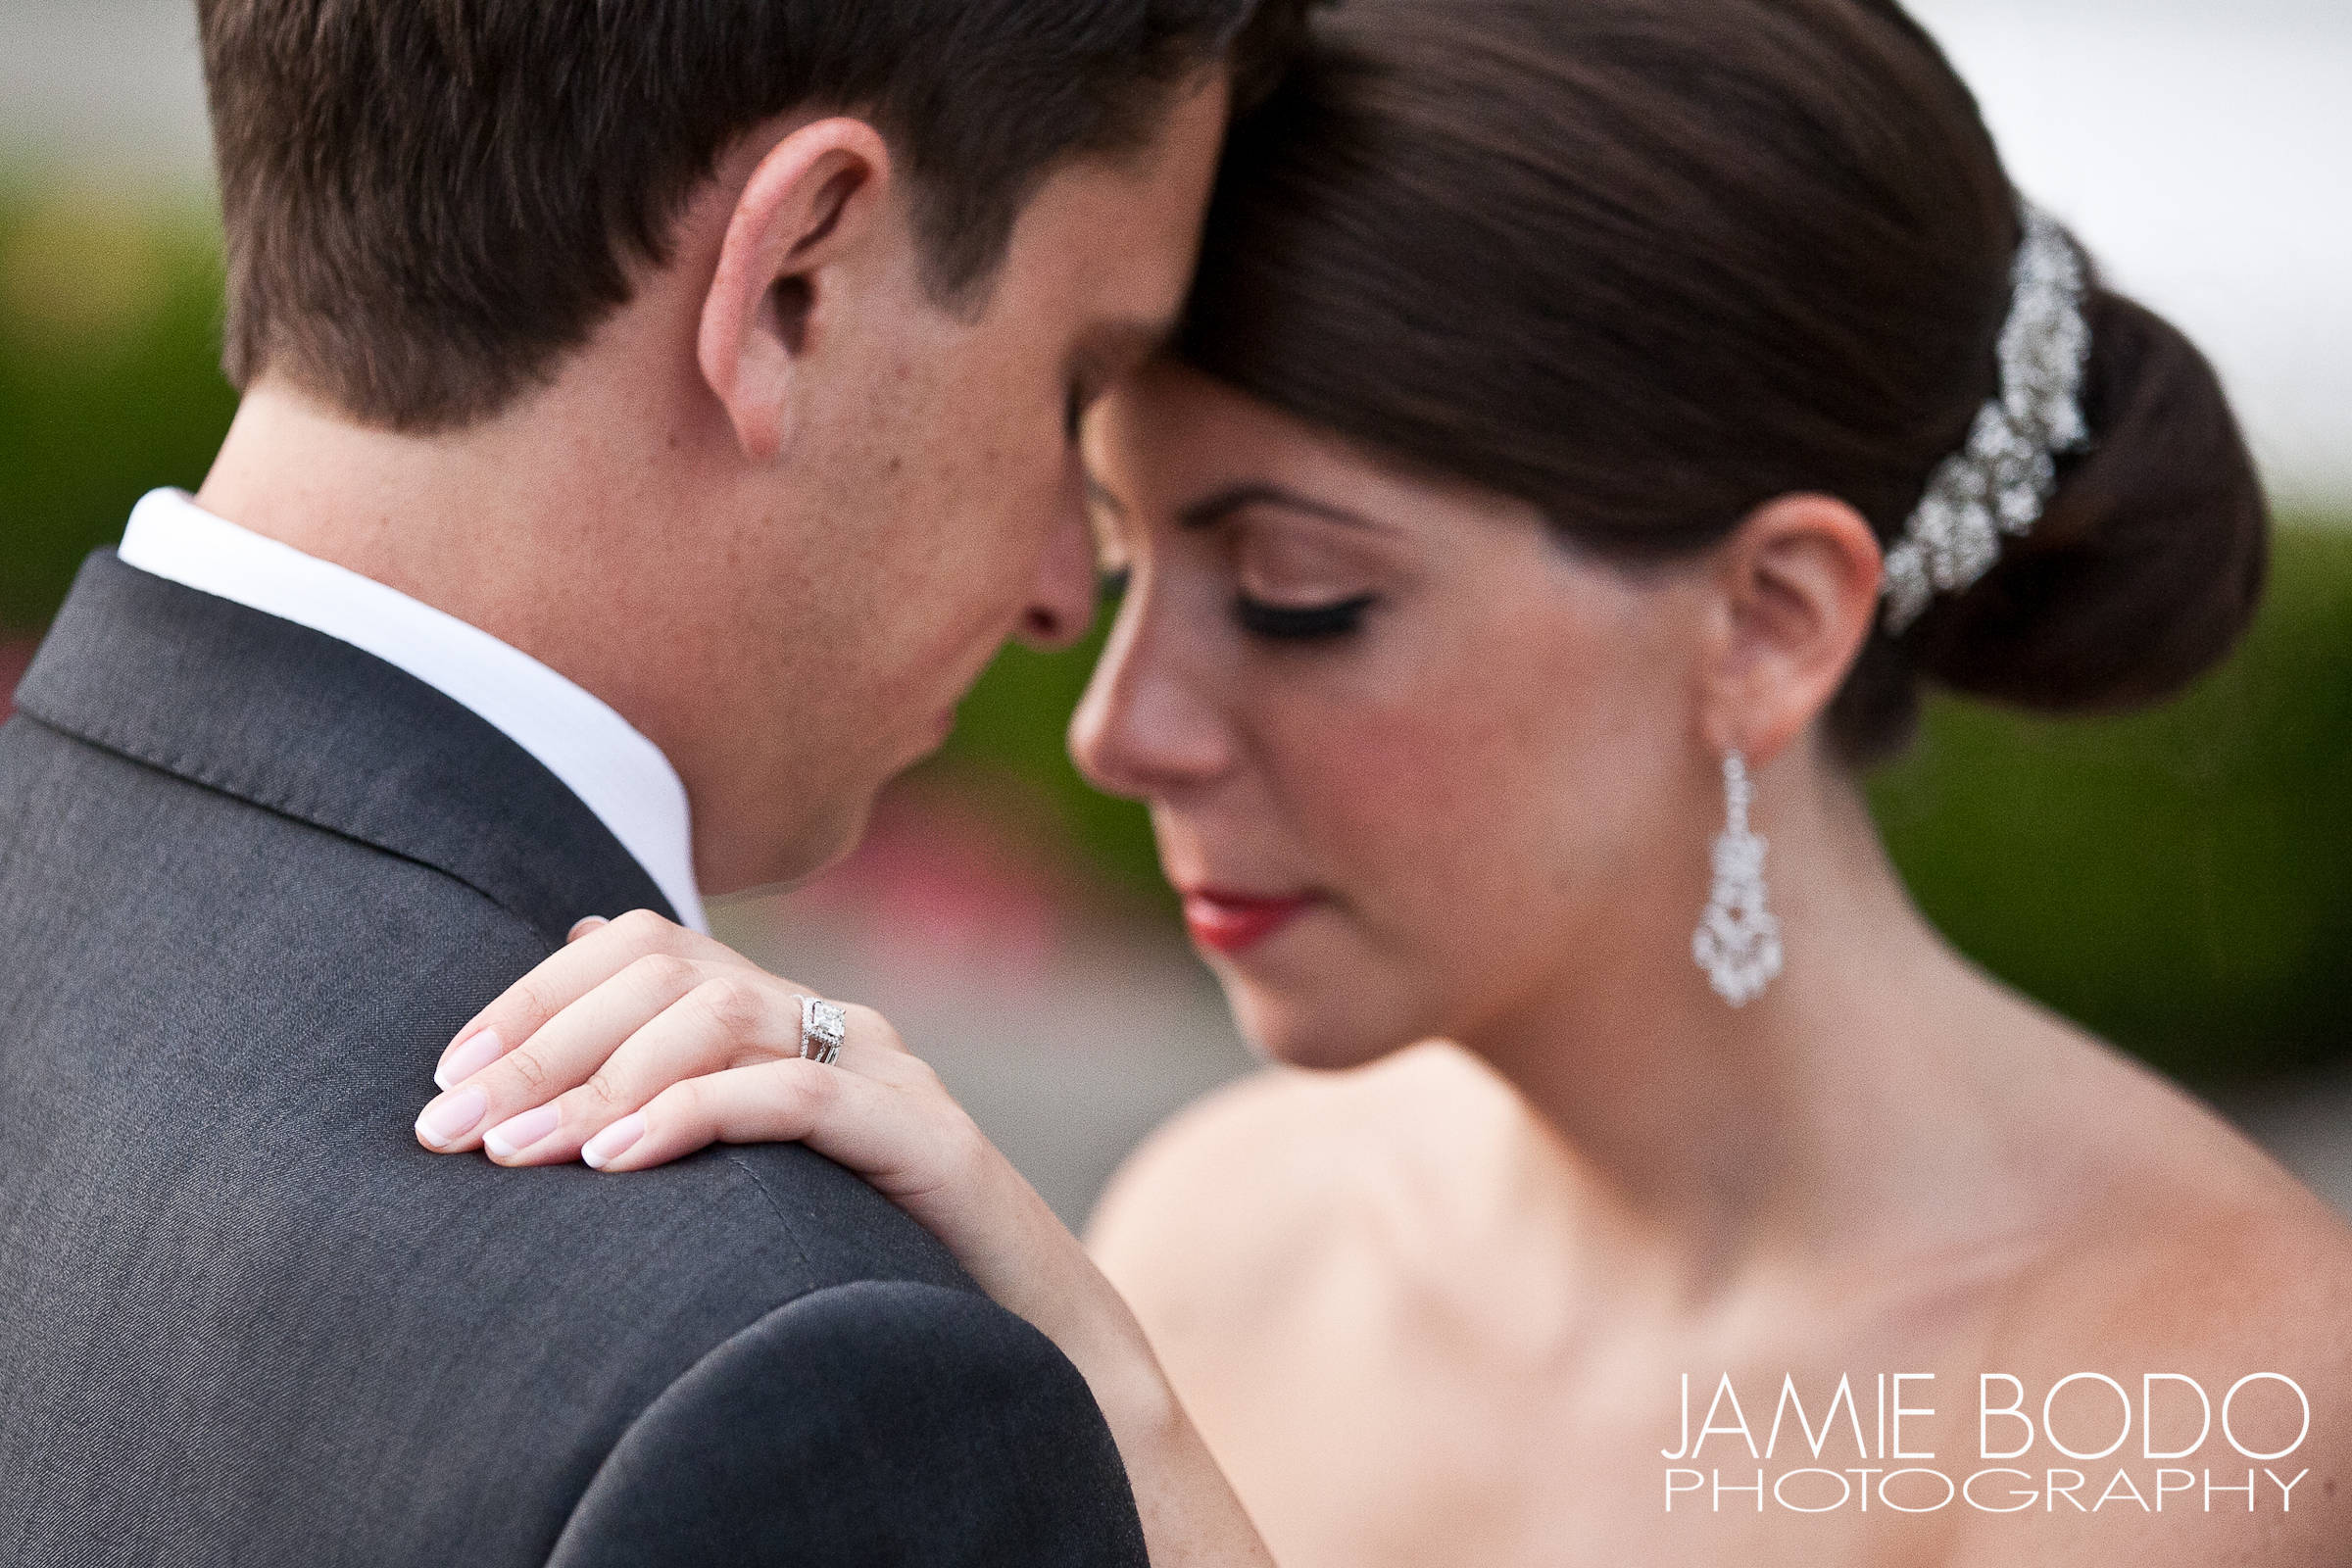 Jamie packer wedding